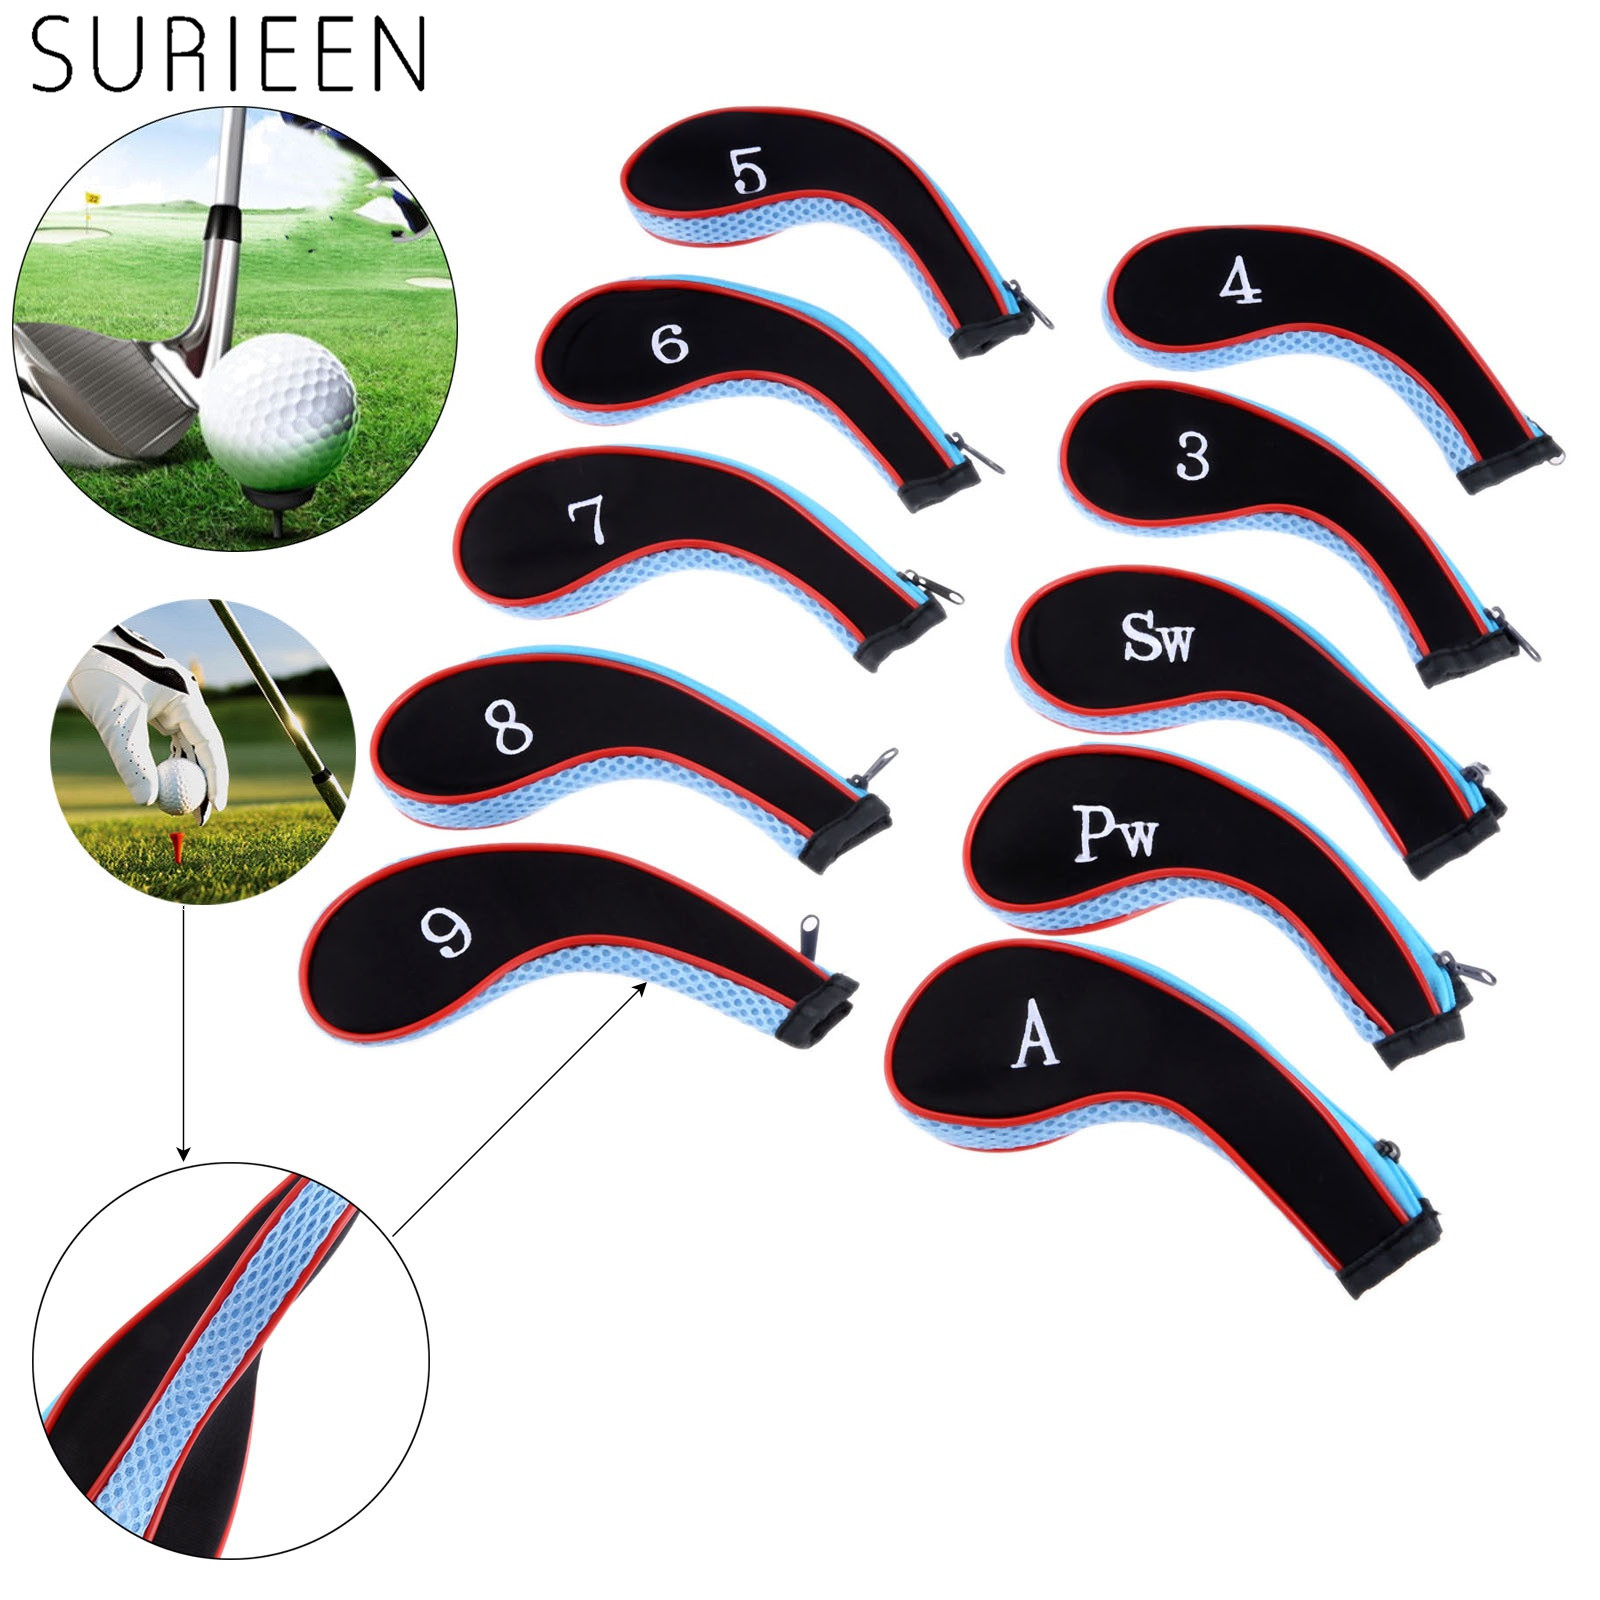 10 Pcs Neoprene Golf Club Head Covers Golf Iron Headcovers Protect Set Number Printed With Zipper Headcover For 3-9 Irons Wedges